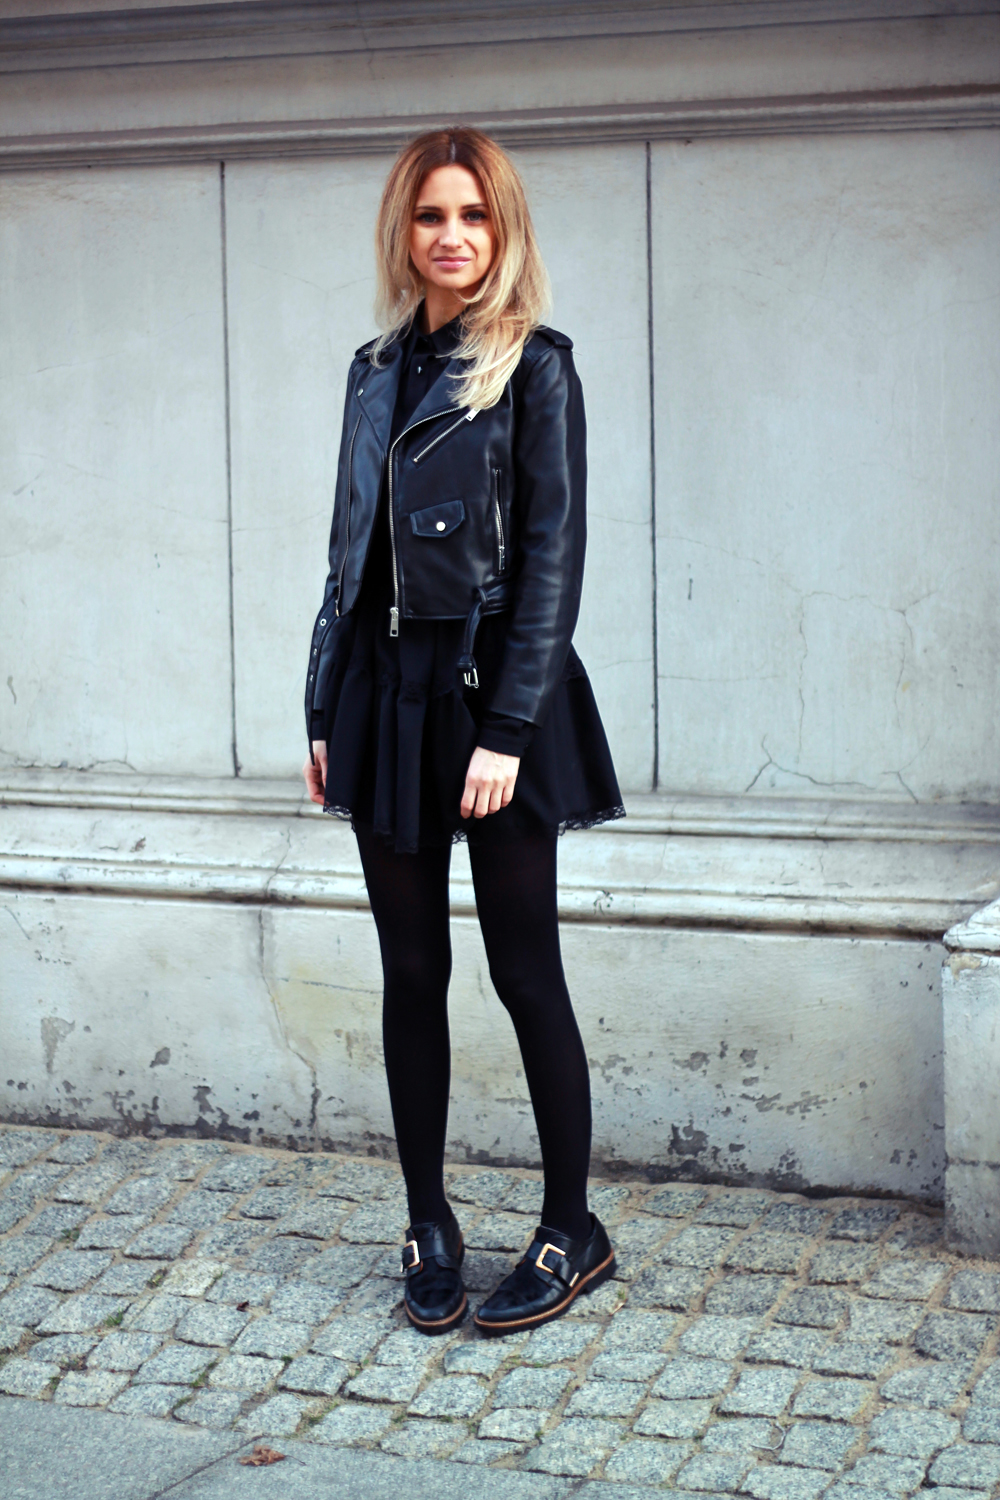 wear black dress zara leather jacket blonde tumblr girl look lookbook street fashion style